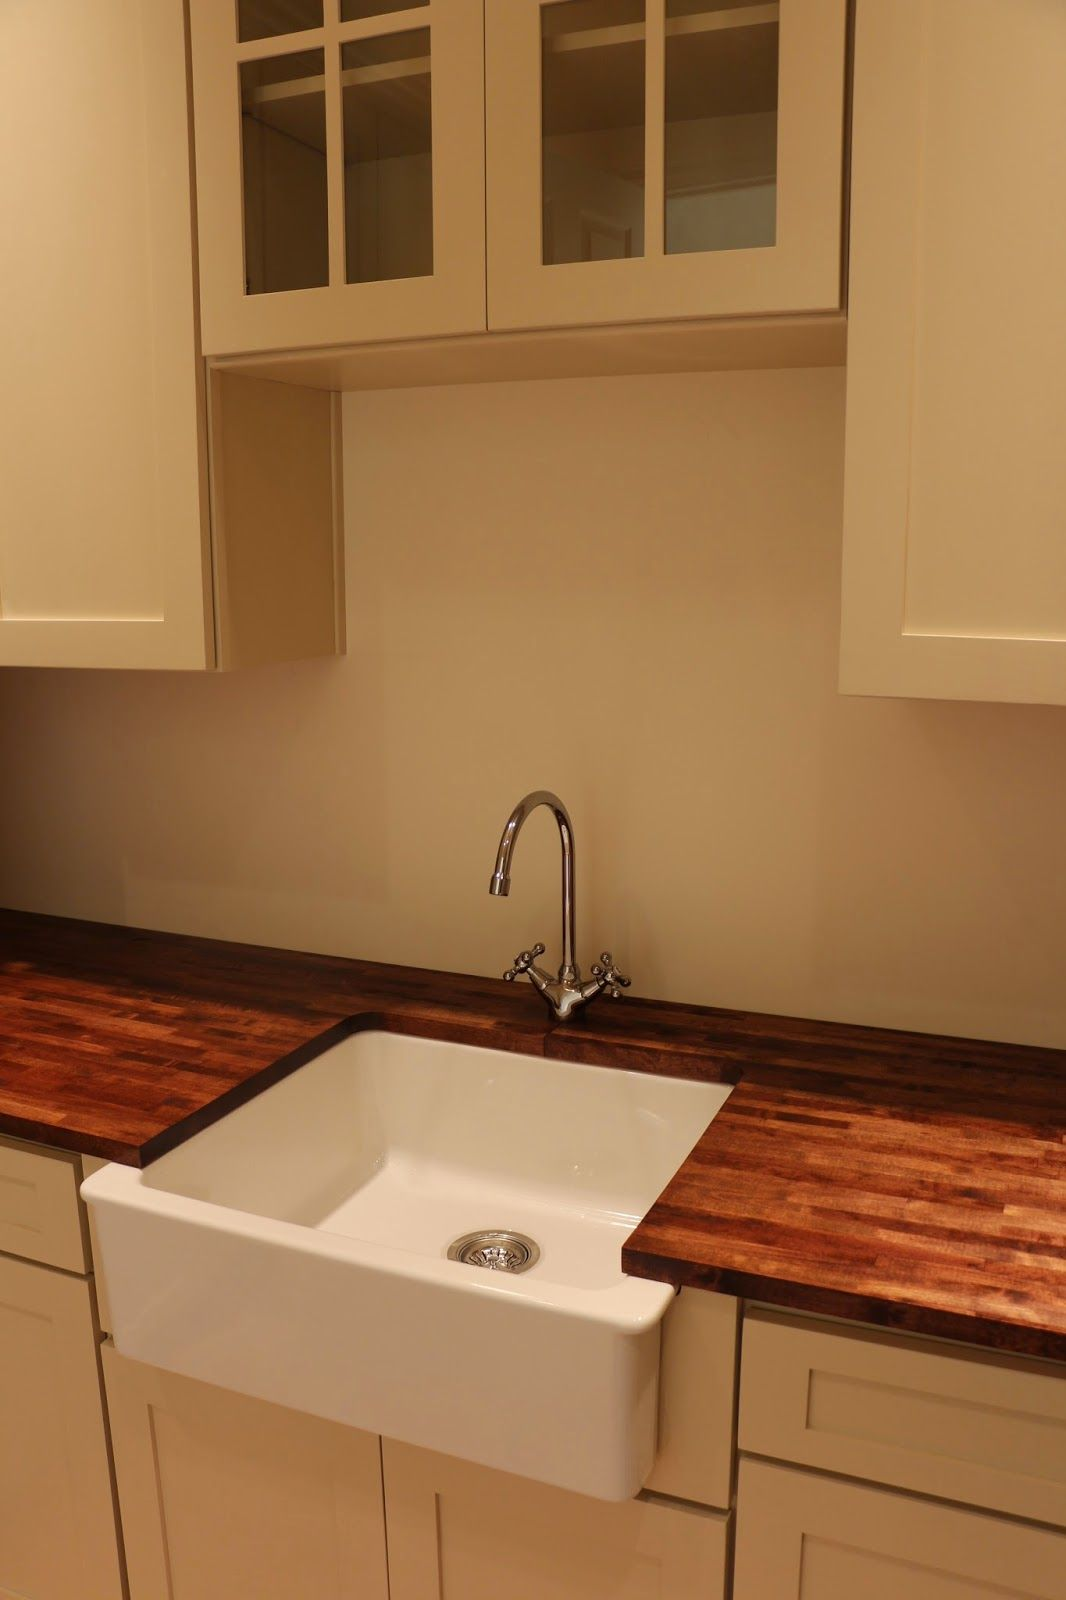 Domsjo Sink Farmhouse Sink Wood Countertops Varde Countertops Ikea Wood Countertops